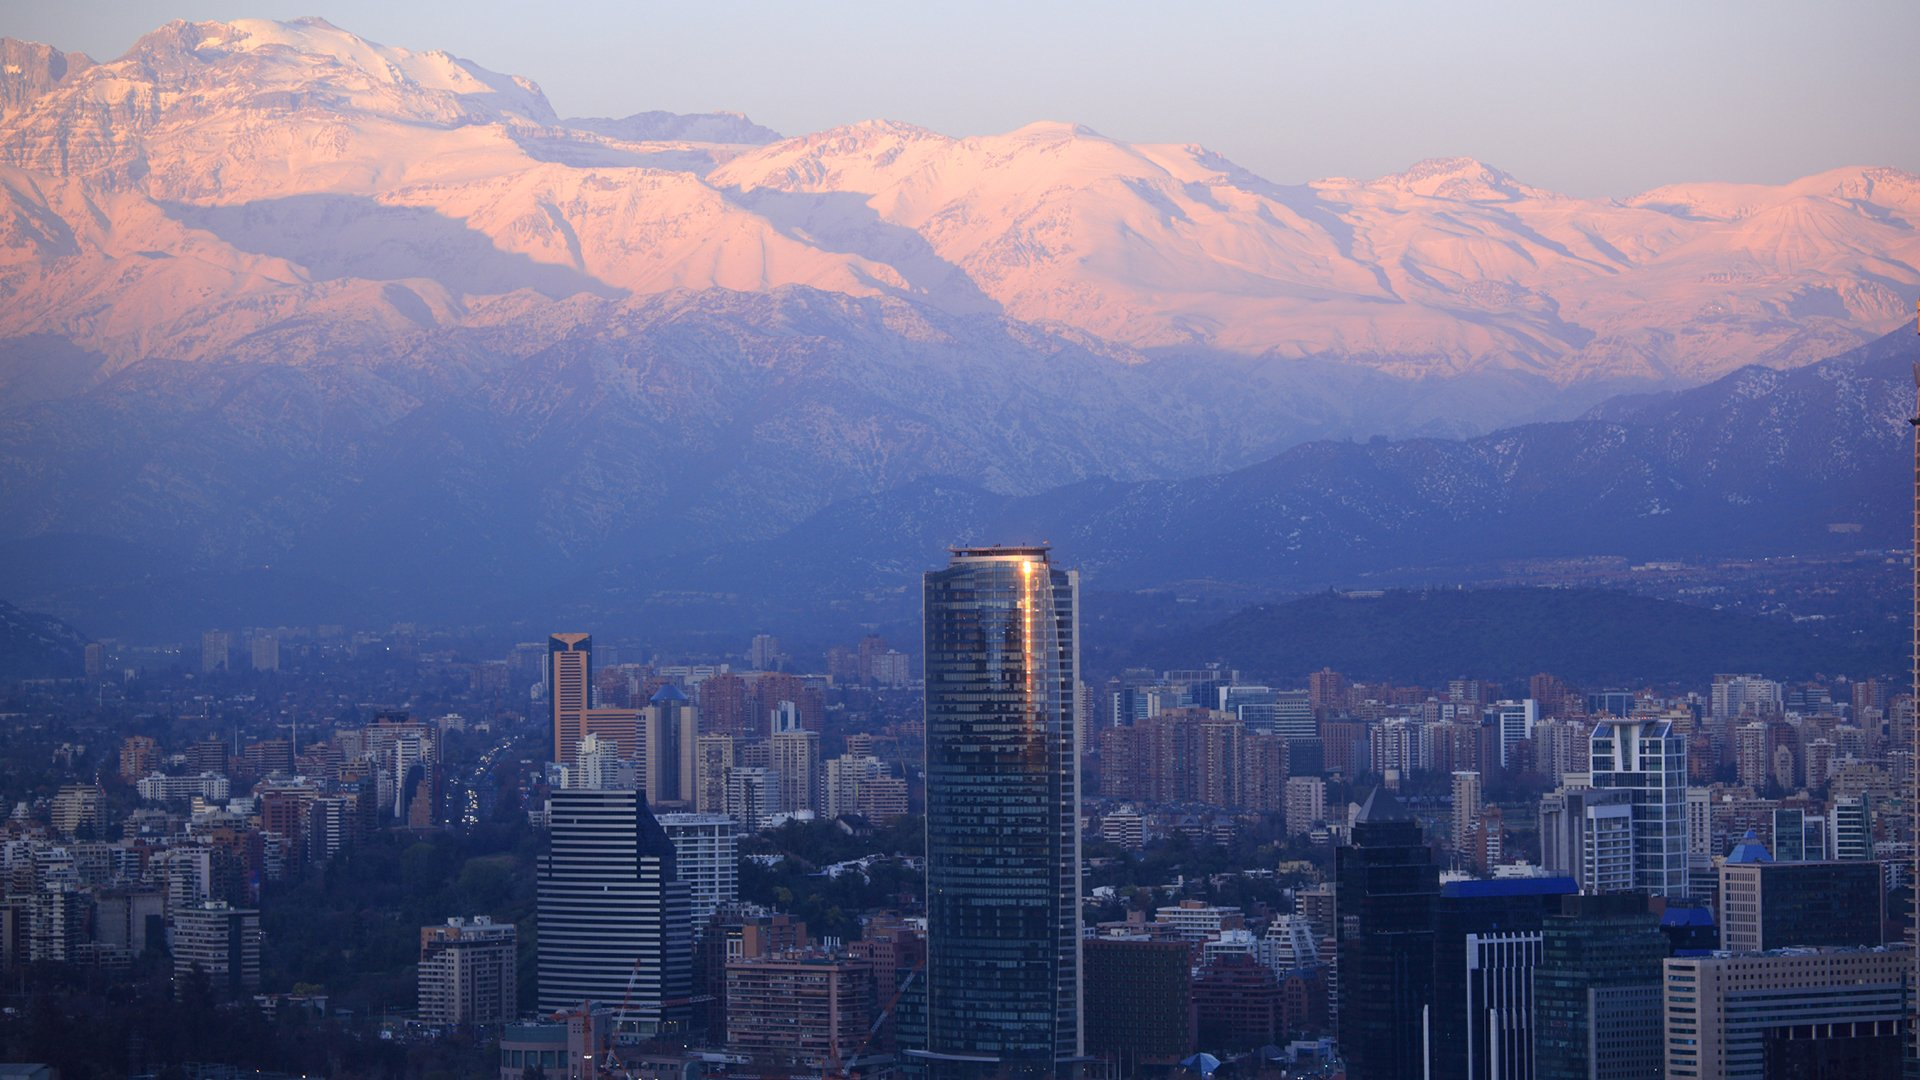 Skiing in Chile - Santiago at Dusk